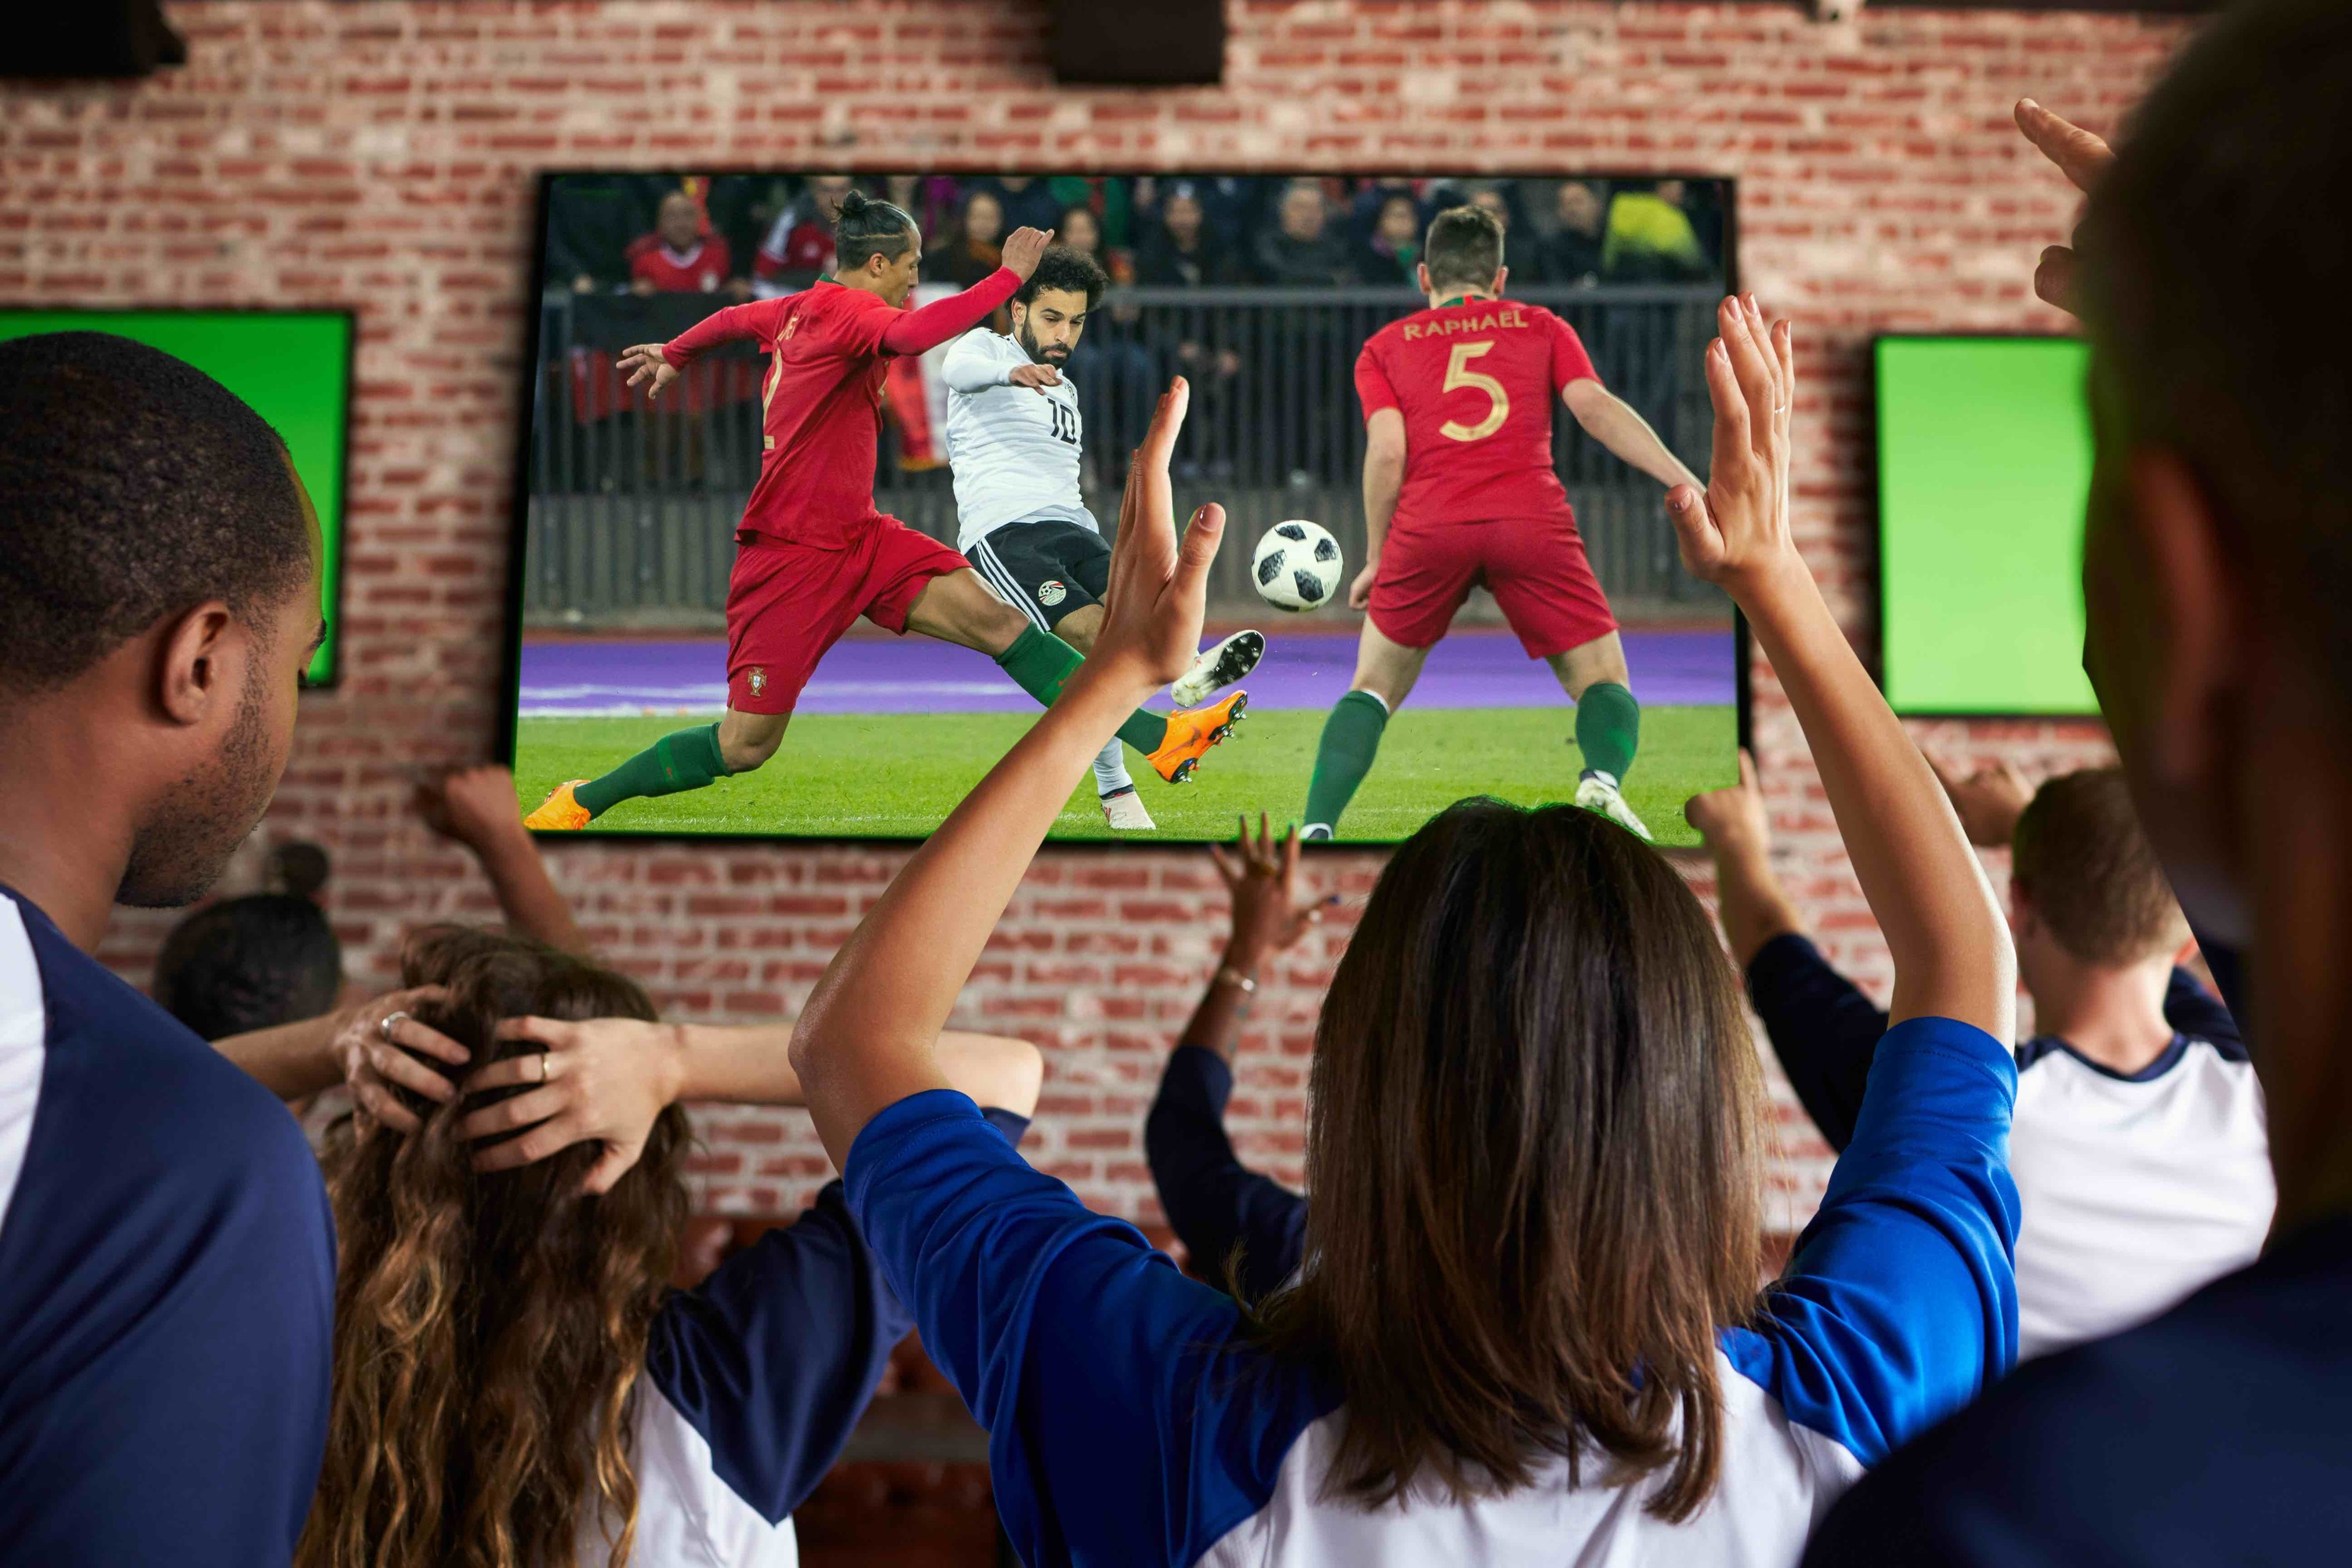 Head down to the pubs and bars to cheer on your favourite team at the FIFA World Cup Finals